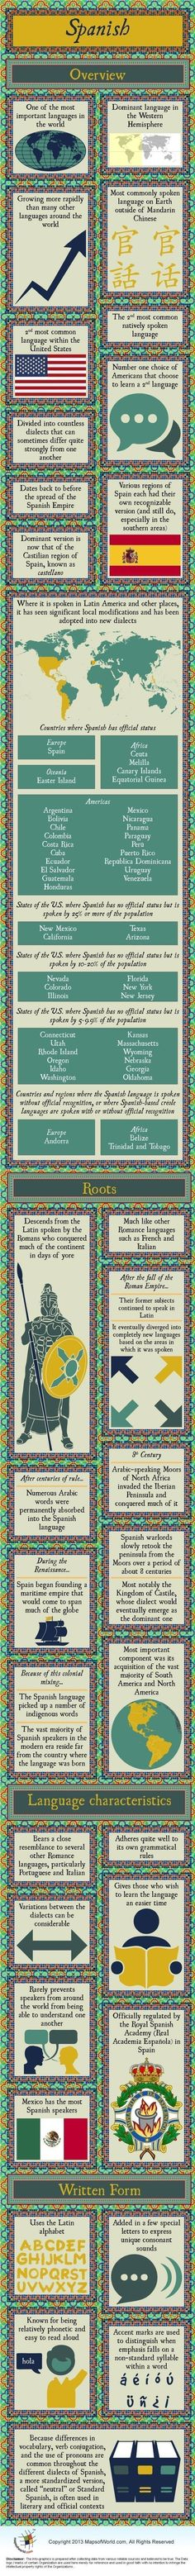 Nice blogpost about Spanish Language – Facts Learn Spanish in Spain, programs for children, teenagers and adults: www.spanish-schoo...http://www.mapsofworld.com/pages/tongues-of-world/infographic/infographic-of-spanish/ #spanishfacts #spanishinfographic #learningspanishlanguage